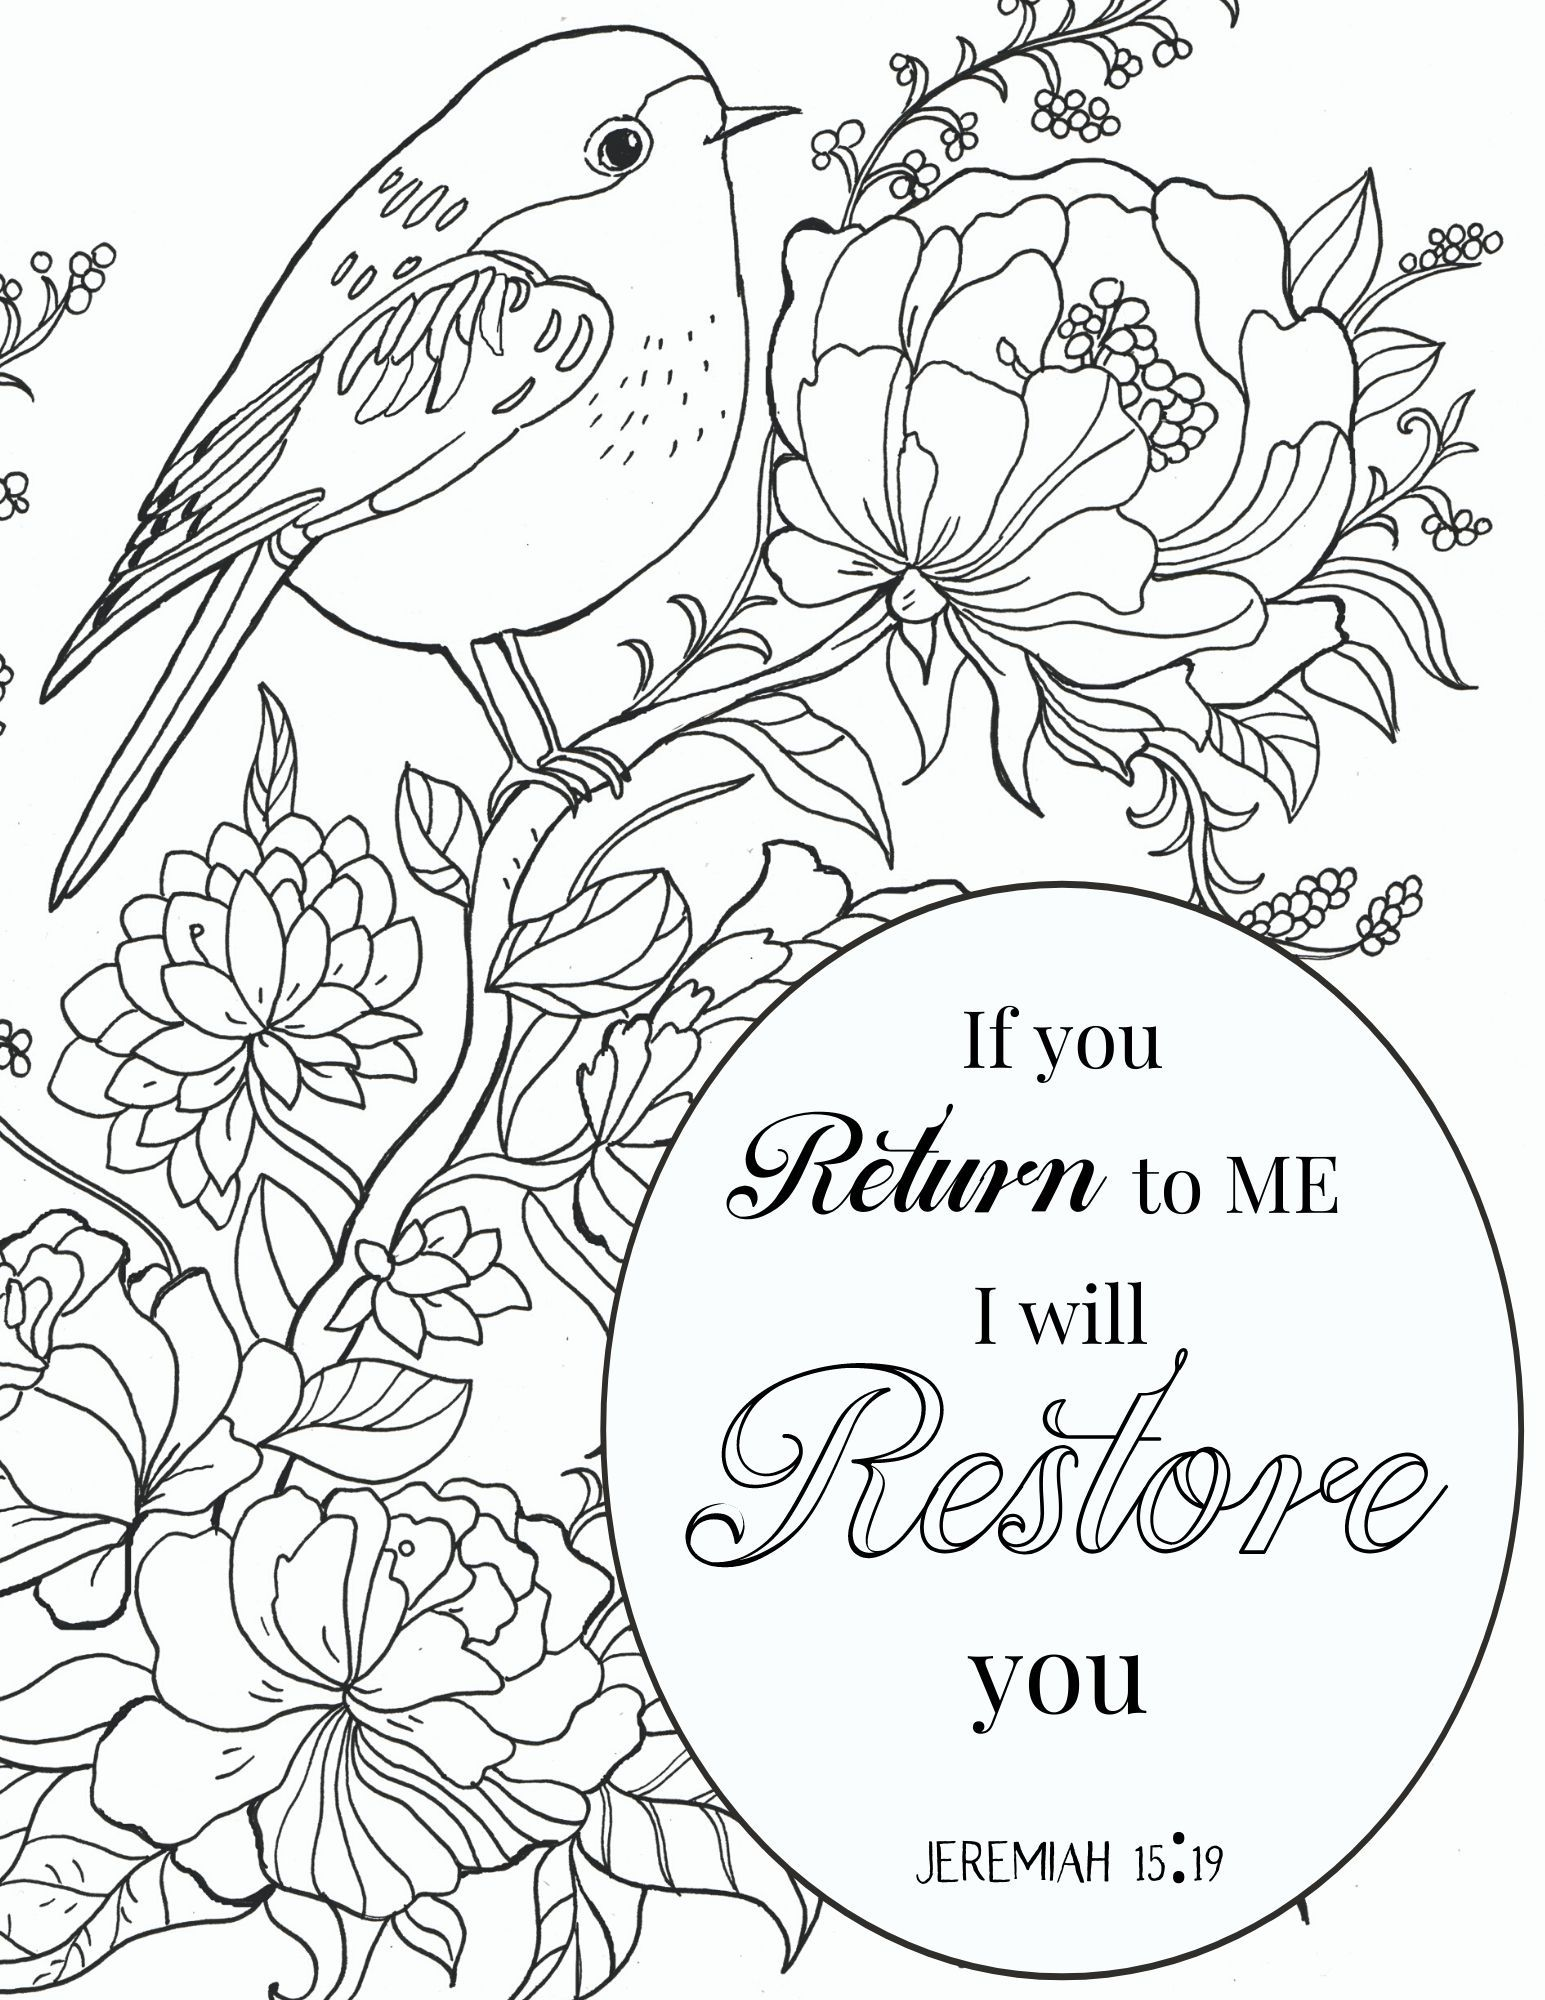 Printables Library Coloring Pages In 2020 Bible Verse Coloring Page Bible Coloring Pages Bible Verse Coloring